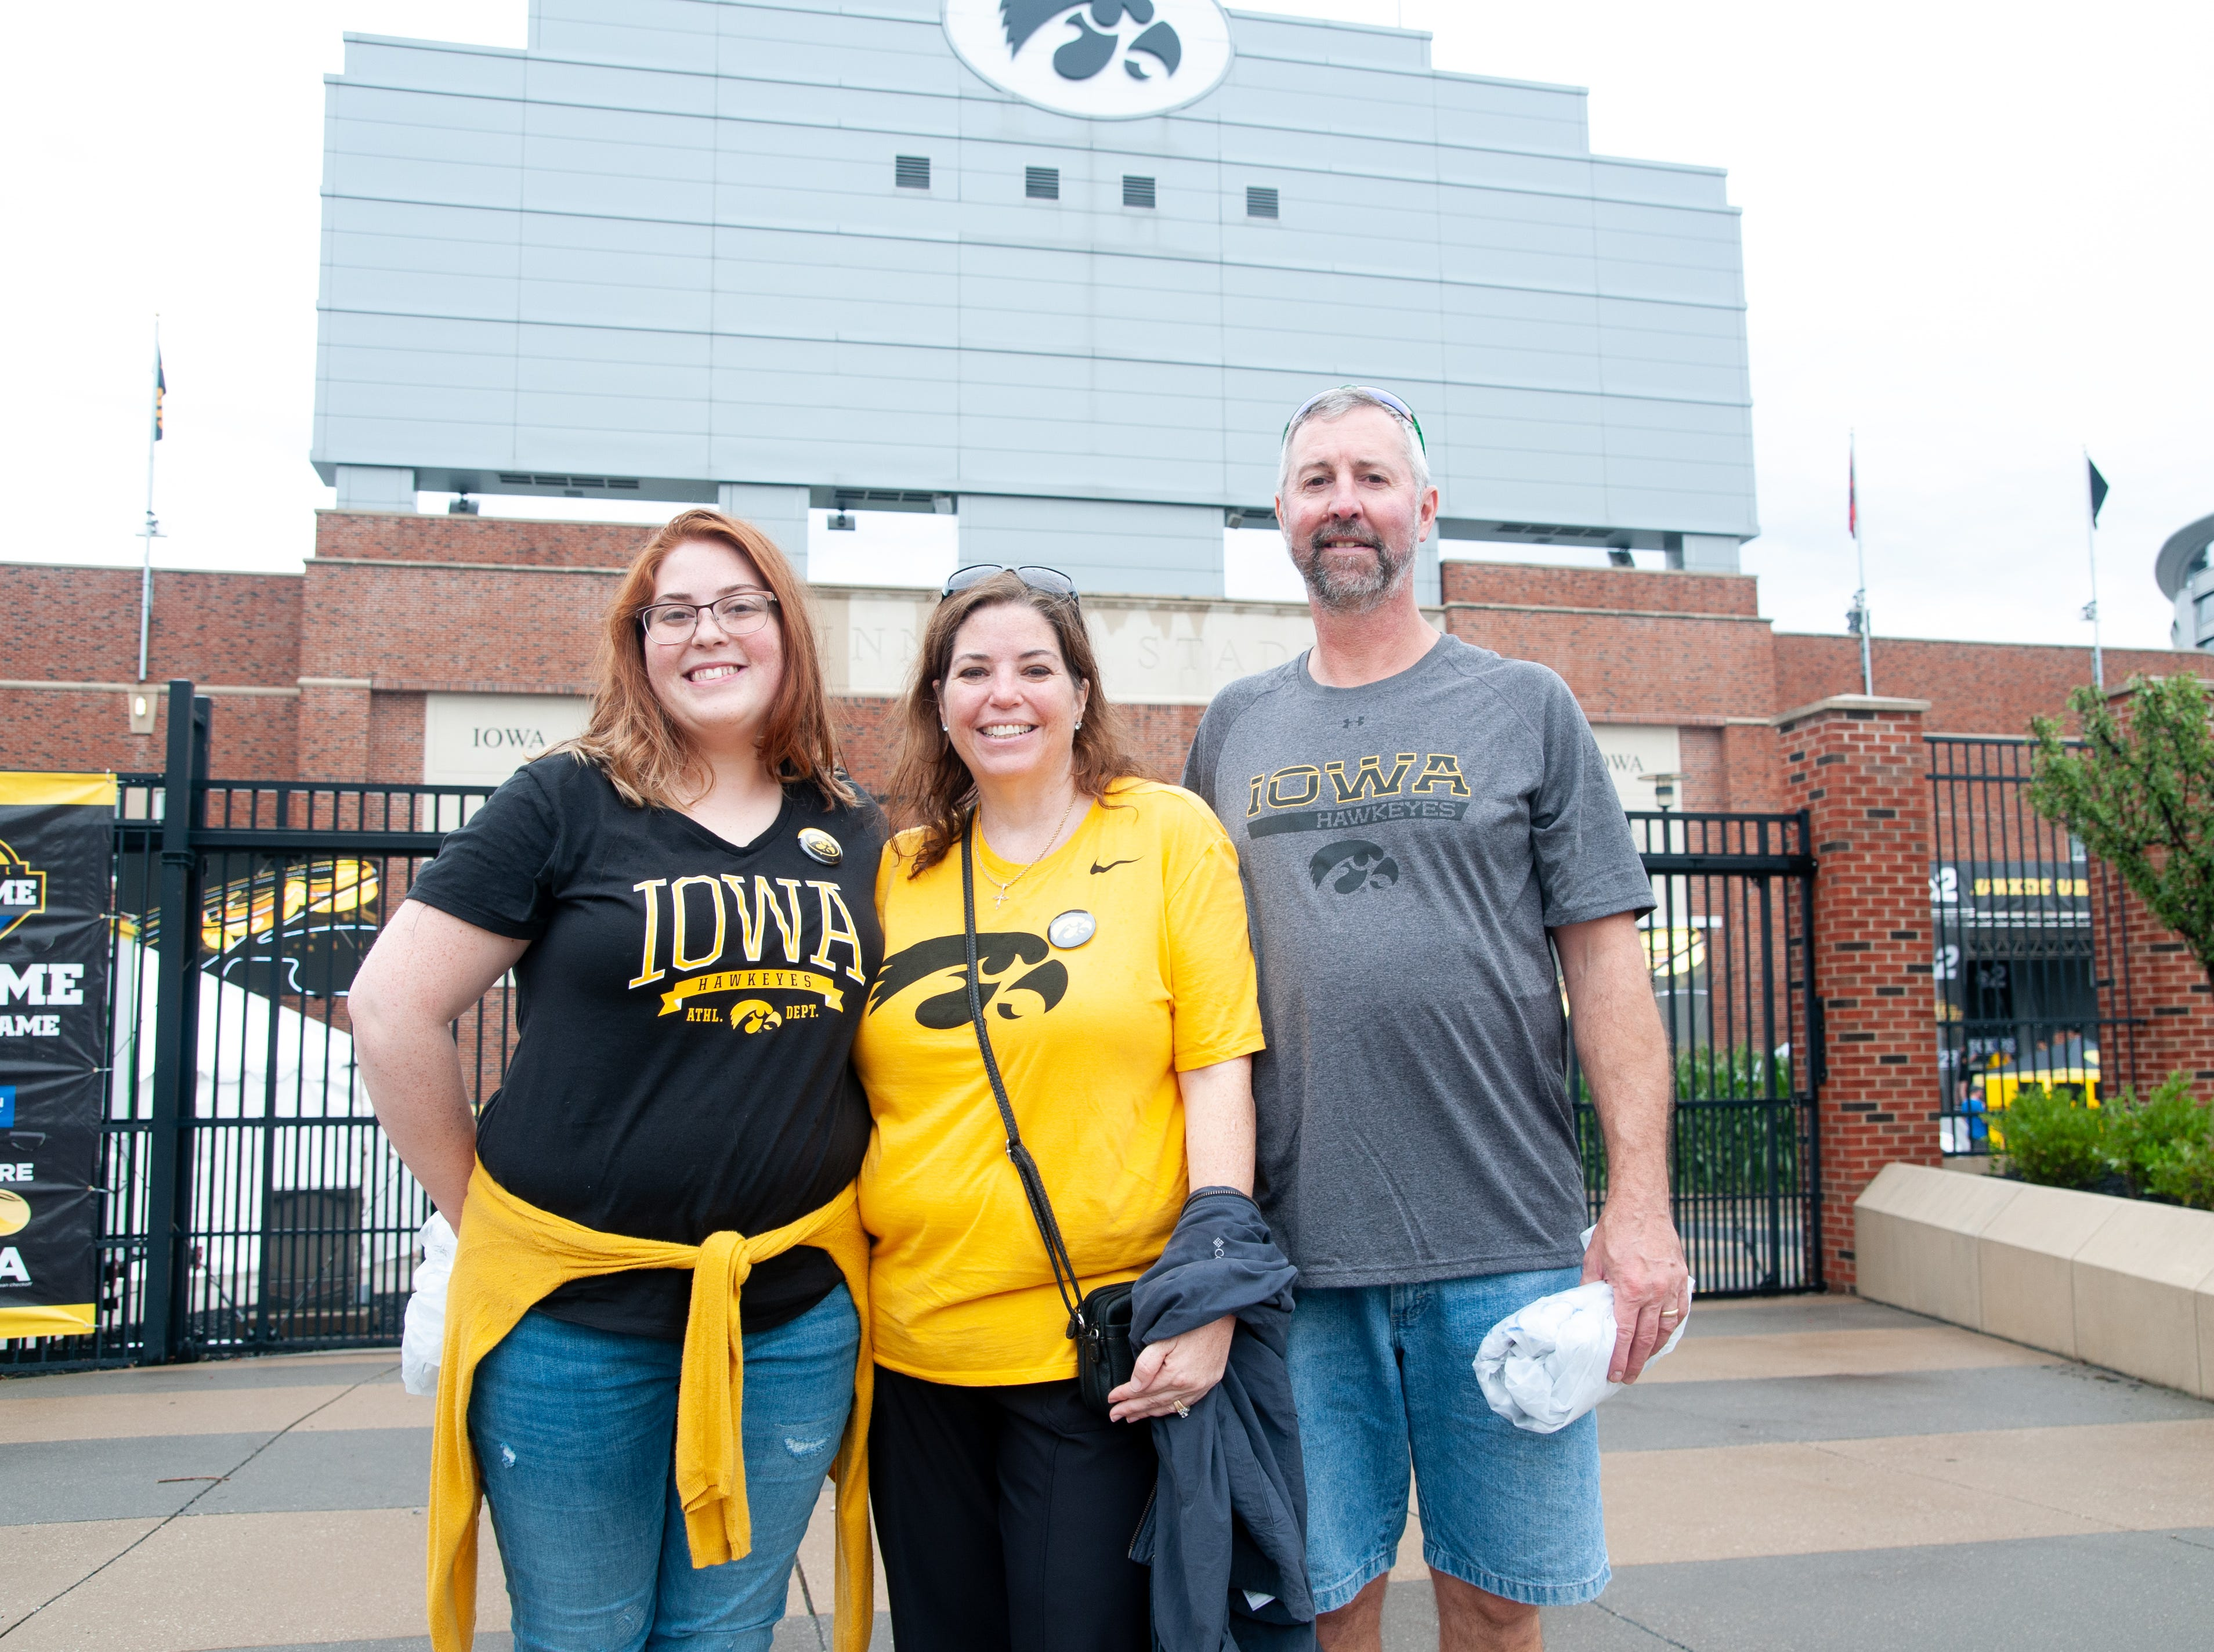 Stephanie Weinberger, 23, (left), and Cheryl, 50, and John Lehman, 55, of DeKalb, Saturday, Sept. 1, 2018, while tailgating before the Iowa game against Northern Illinois in Iowa City.